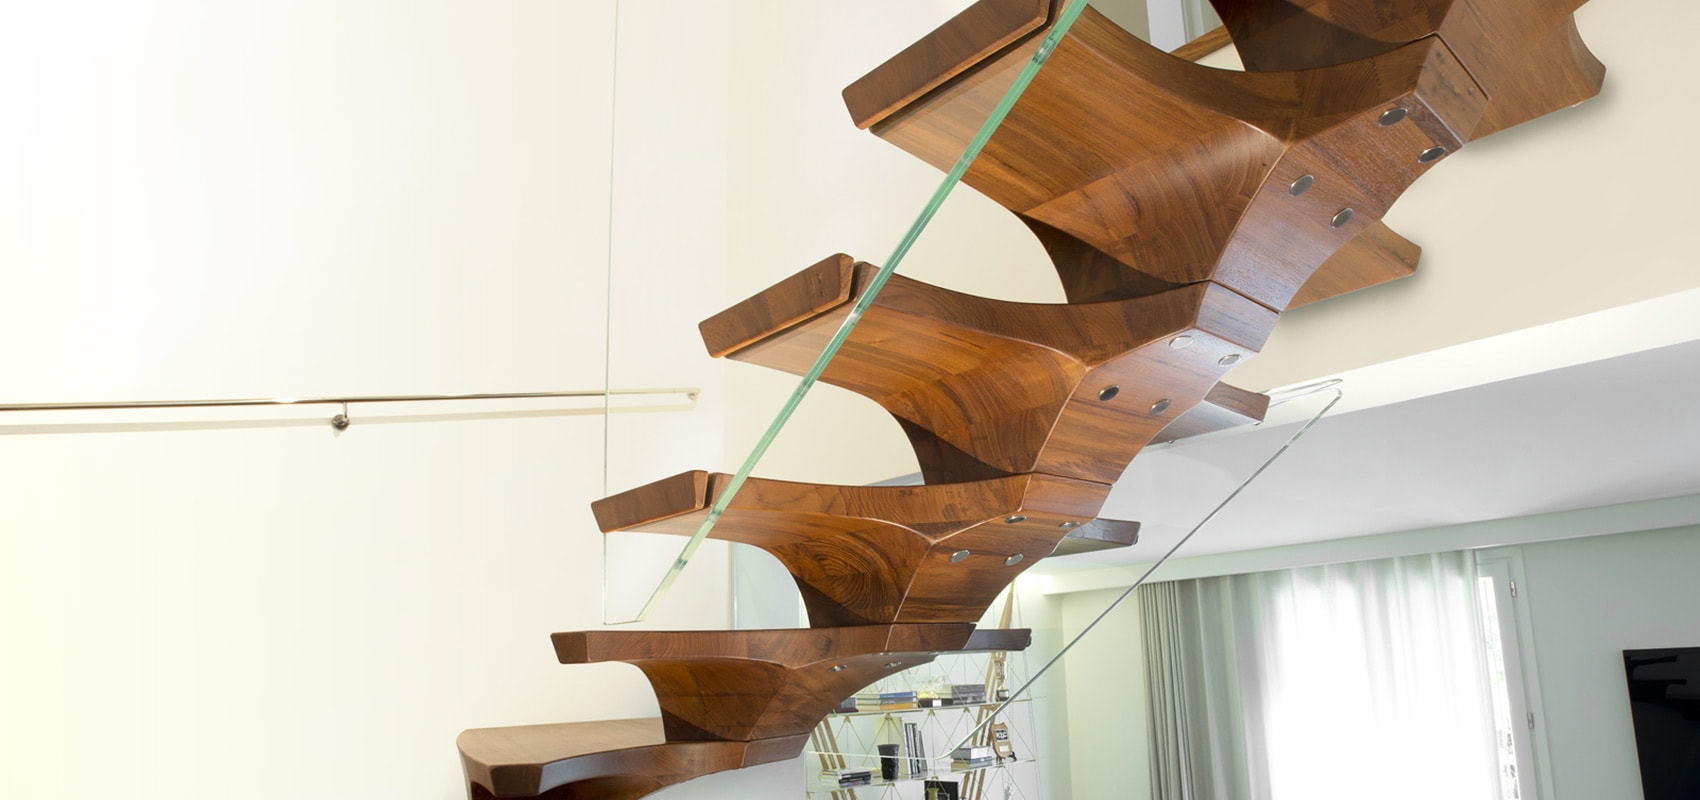 Concorde stair by Marretti